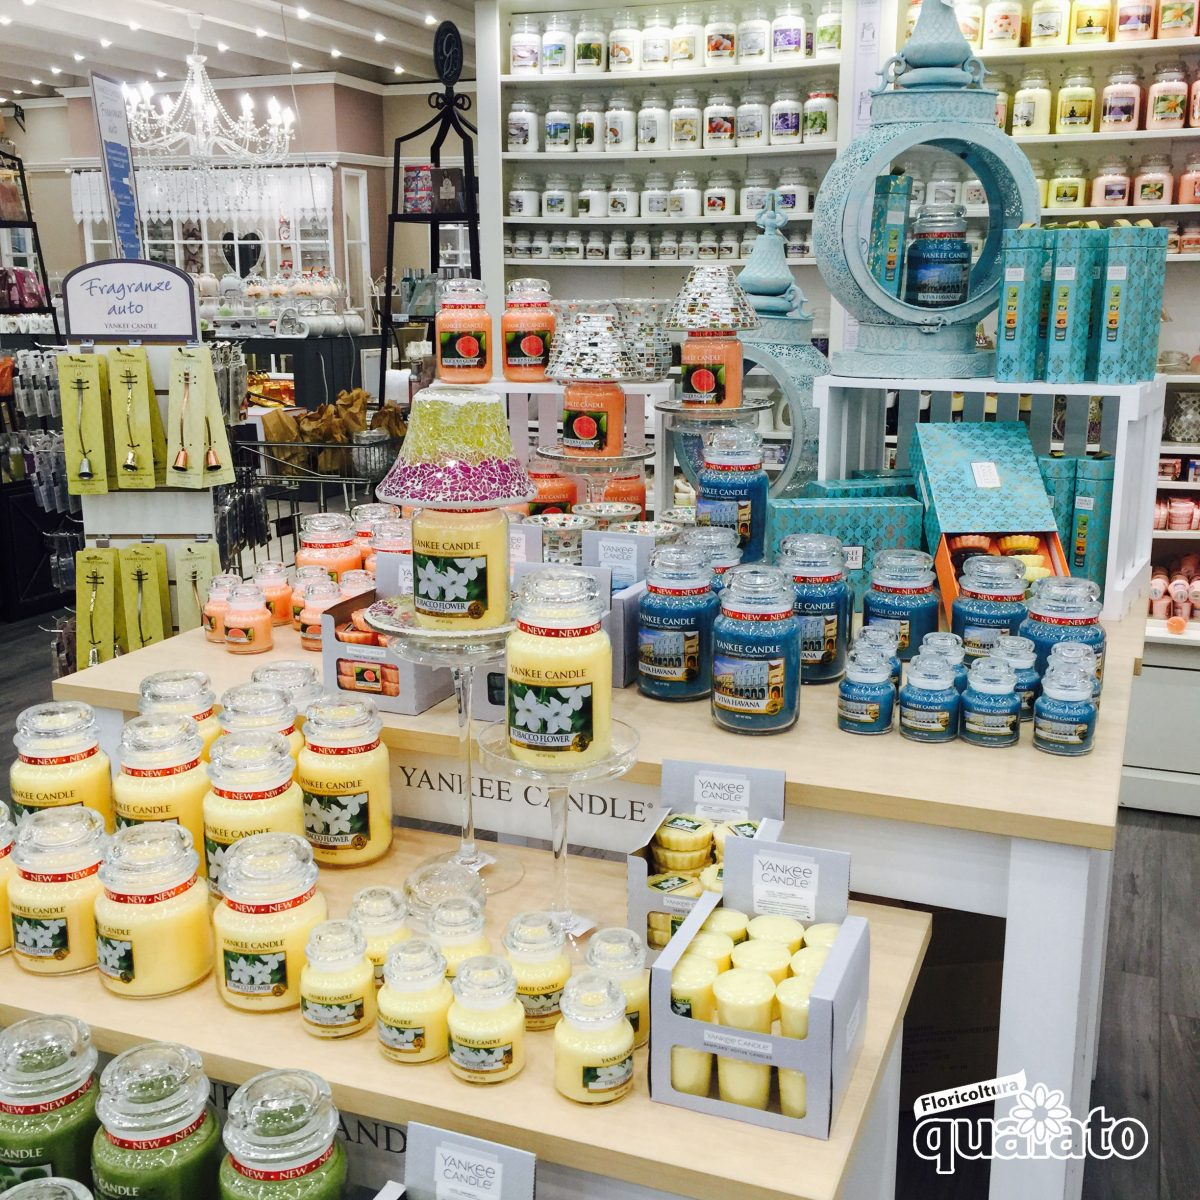 Yankee candle nuove fragranze estate 2017 havana for Mobili yankee candle